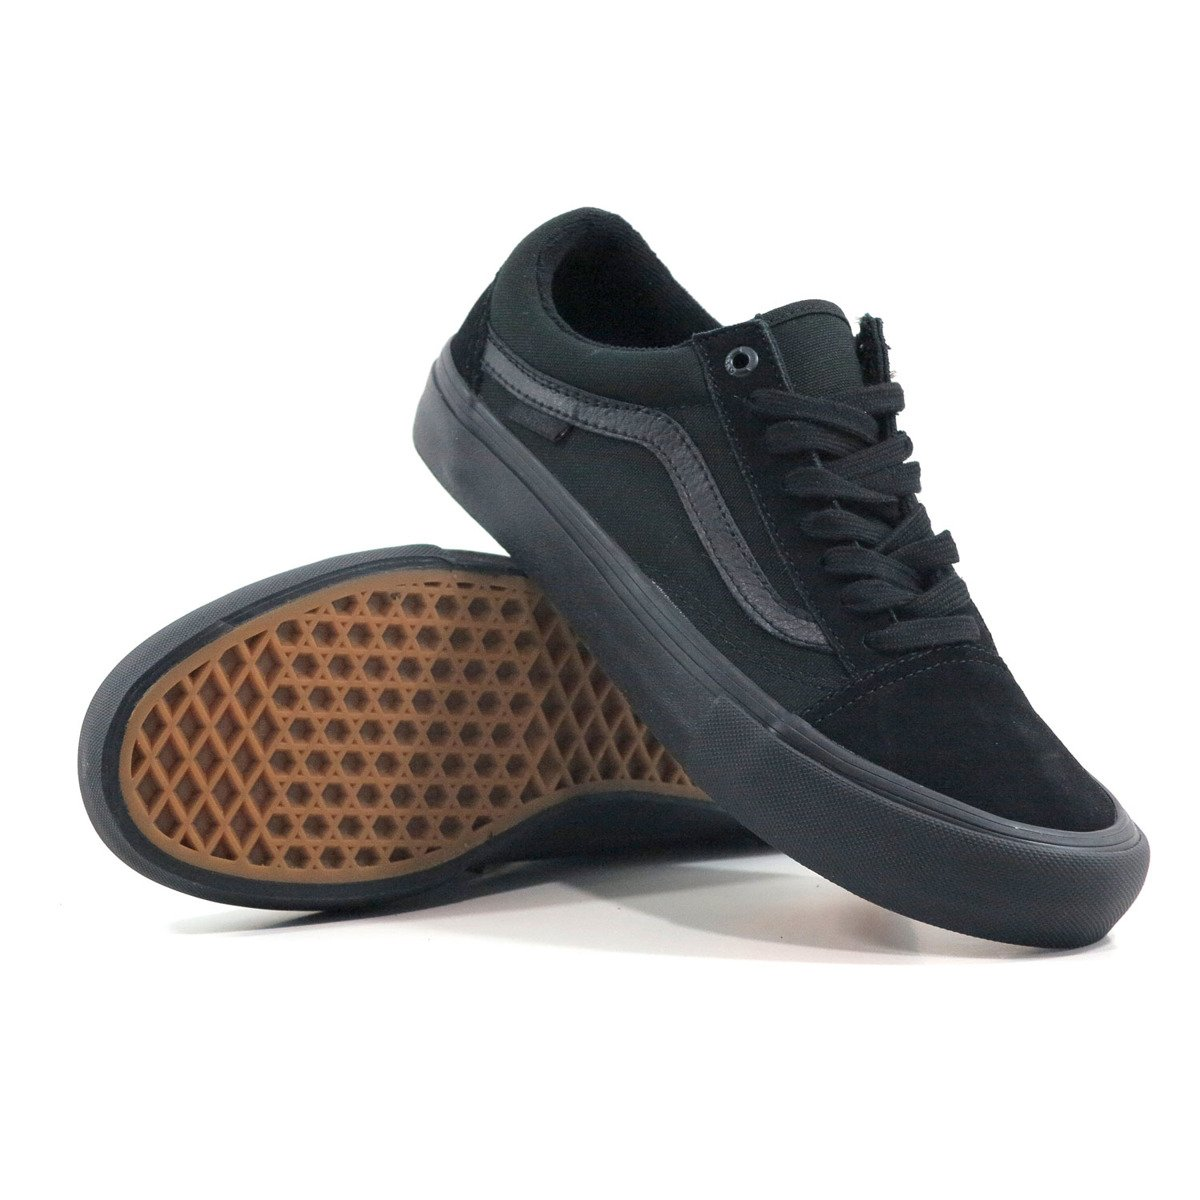 63eb3b898872 Miniramp Skateshop buty vans old skool pro blackout